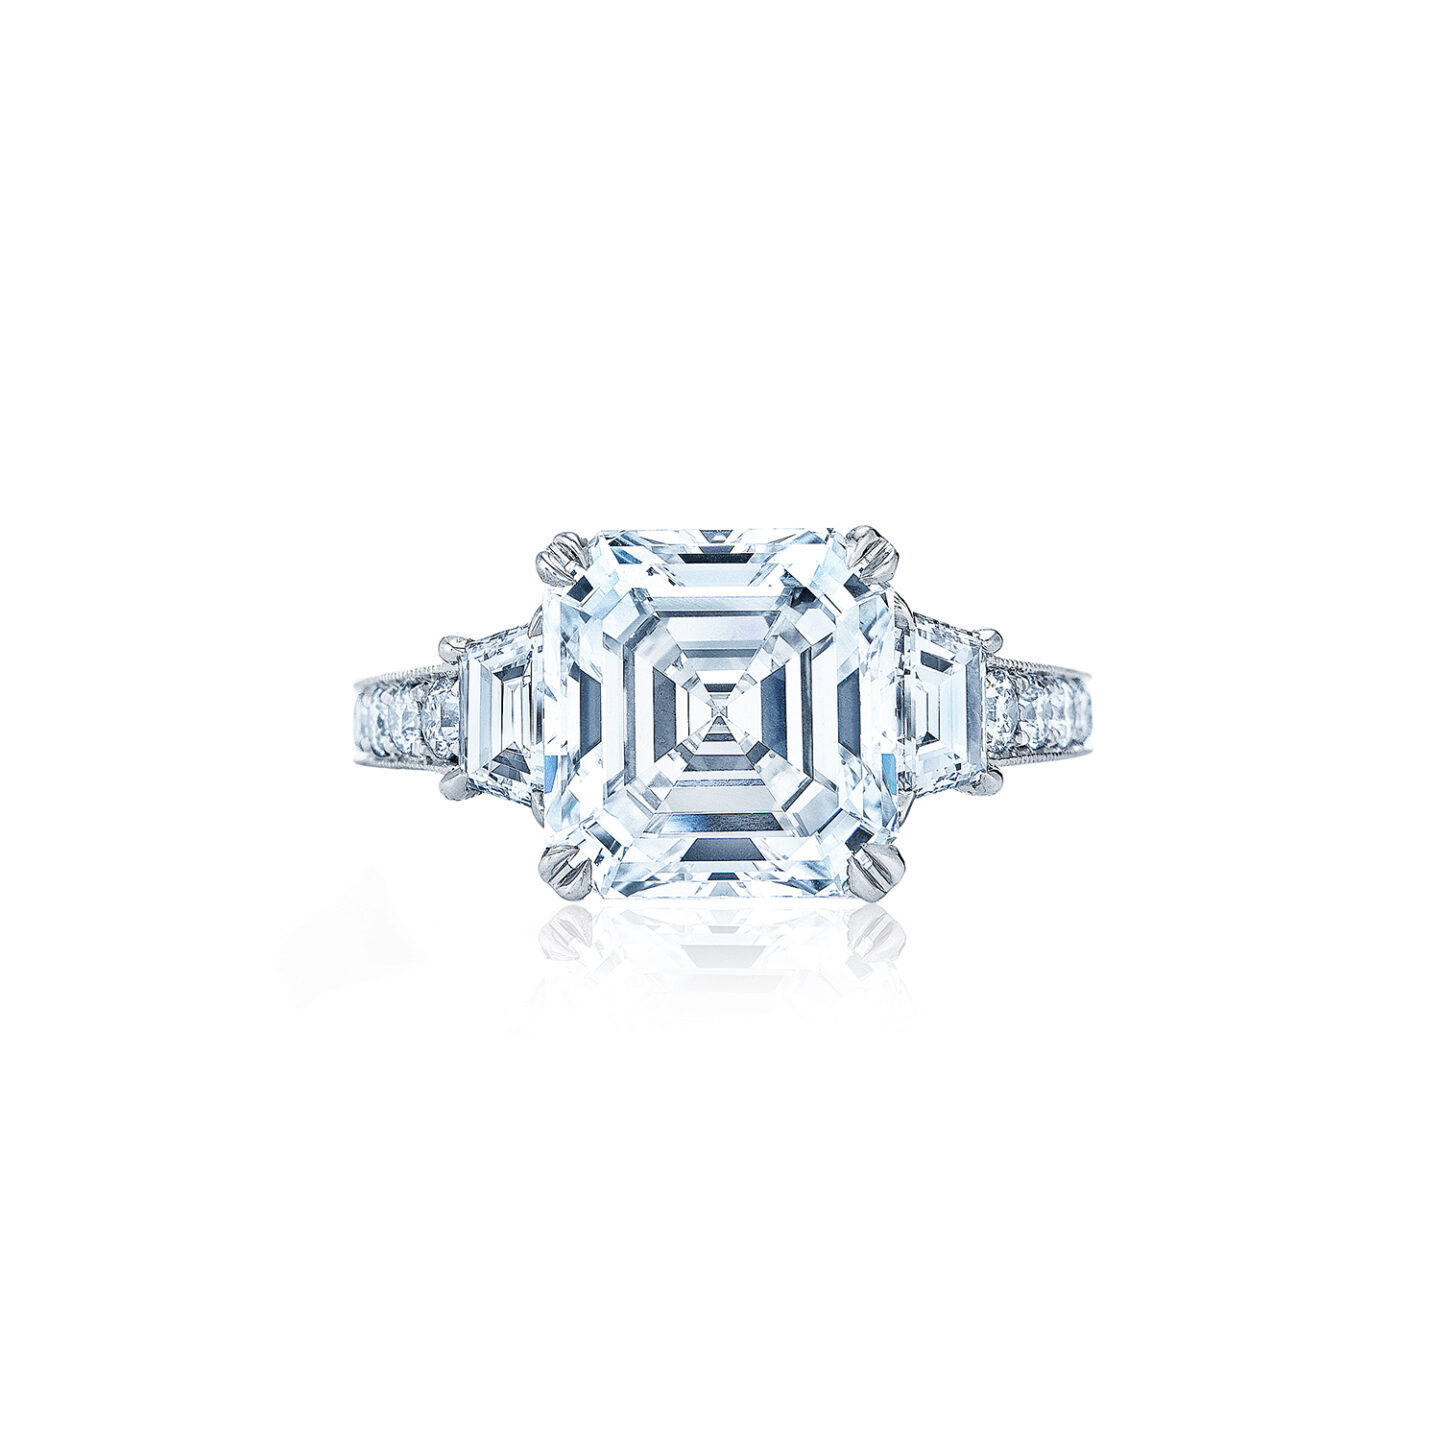 Asscher Cut Diamond Engagement Ring With Two Trapezoid Side Stones In A Vintage Style In Platinum